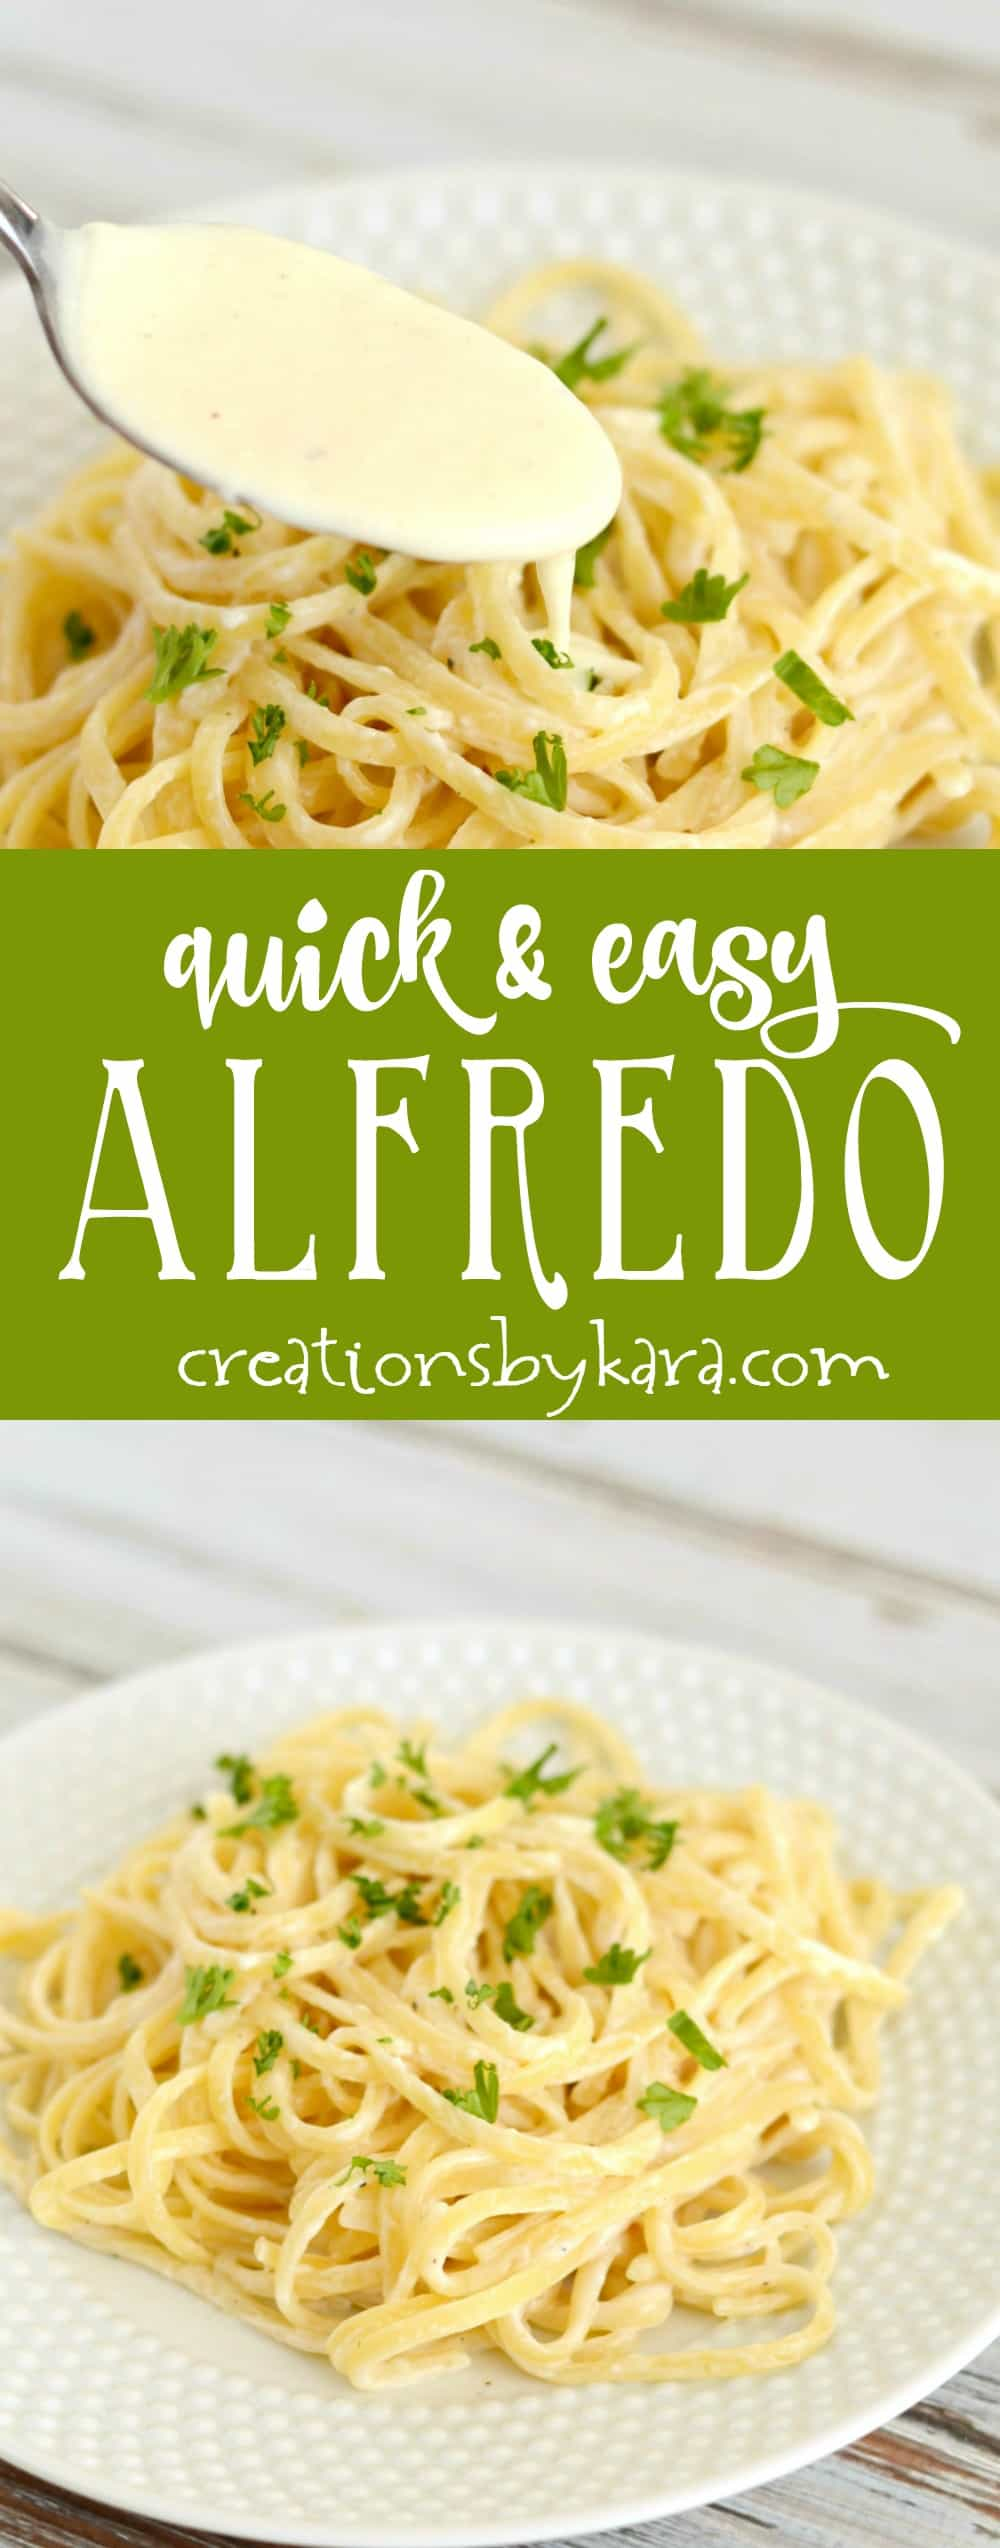 Quick Easy Makeup Tips Ideas For Work: Quick And Easy Alfredo Sauce